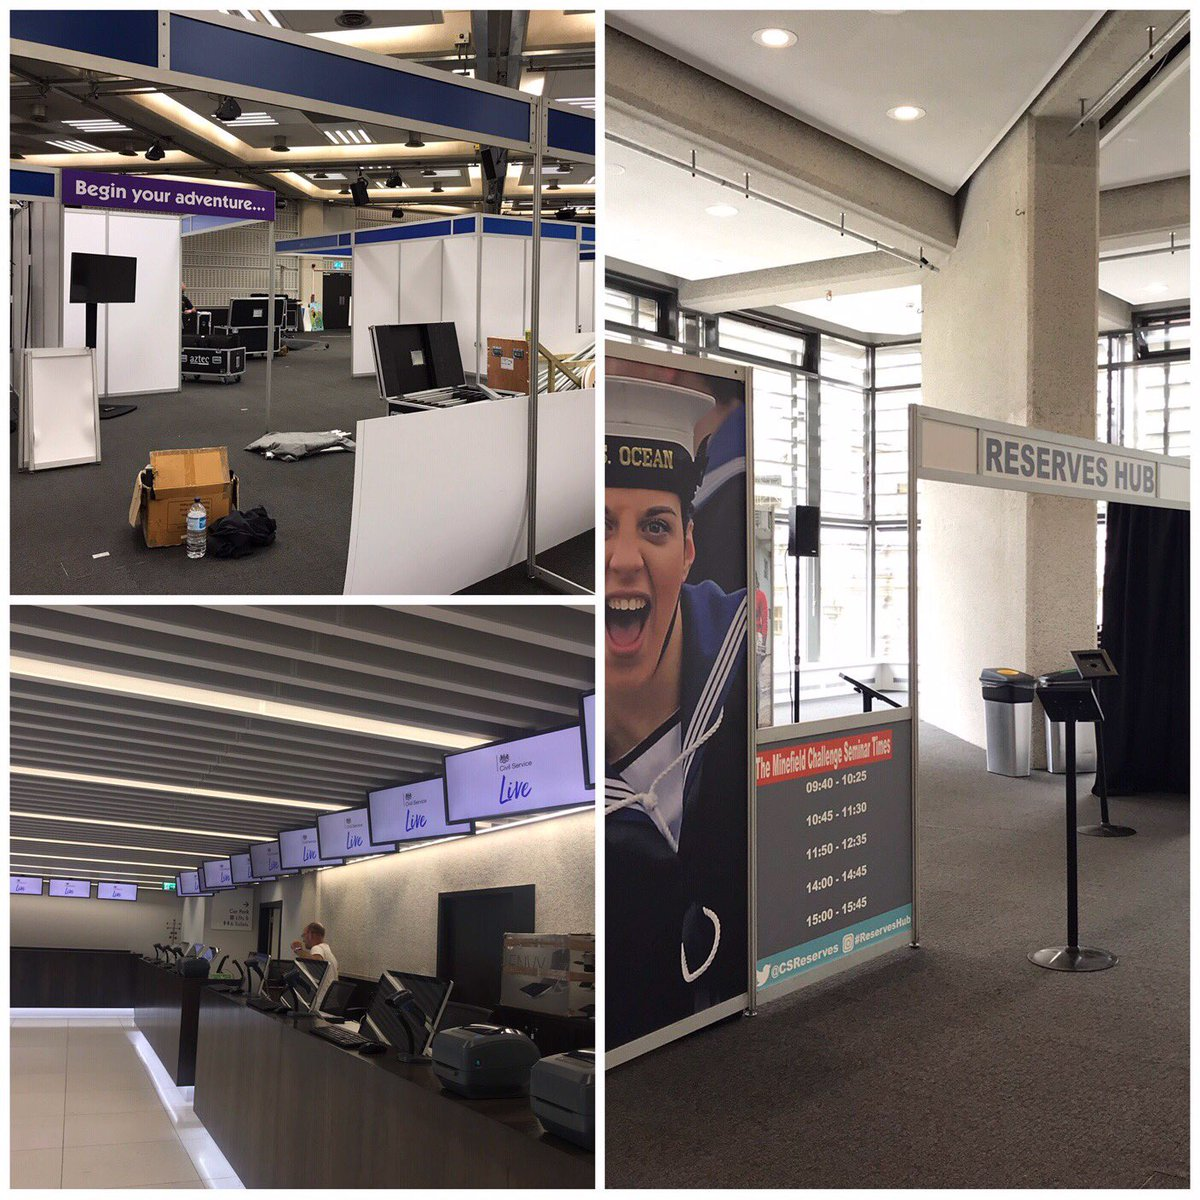 Preparations are well under way at the Queen Elizabeth II Centre. Can't wait to open our doors tomorrow for #CivilServiceLive in London. Looking forward to seeing all those attending